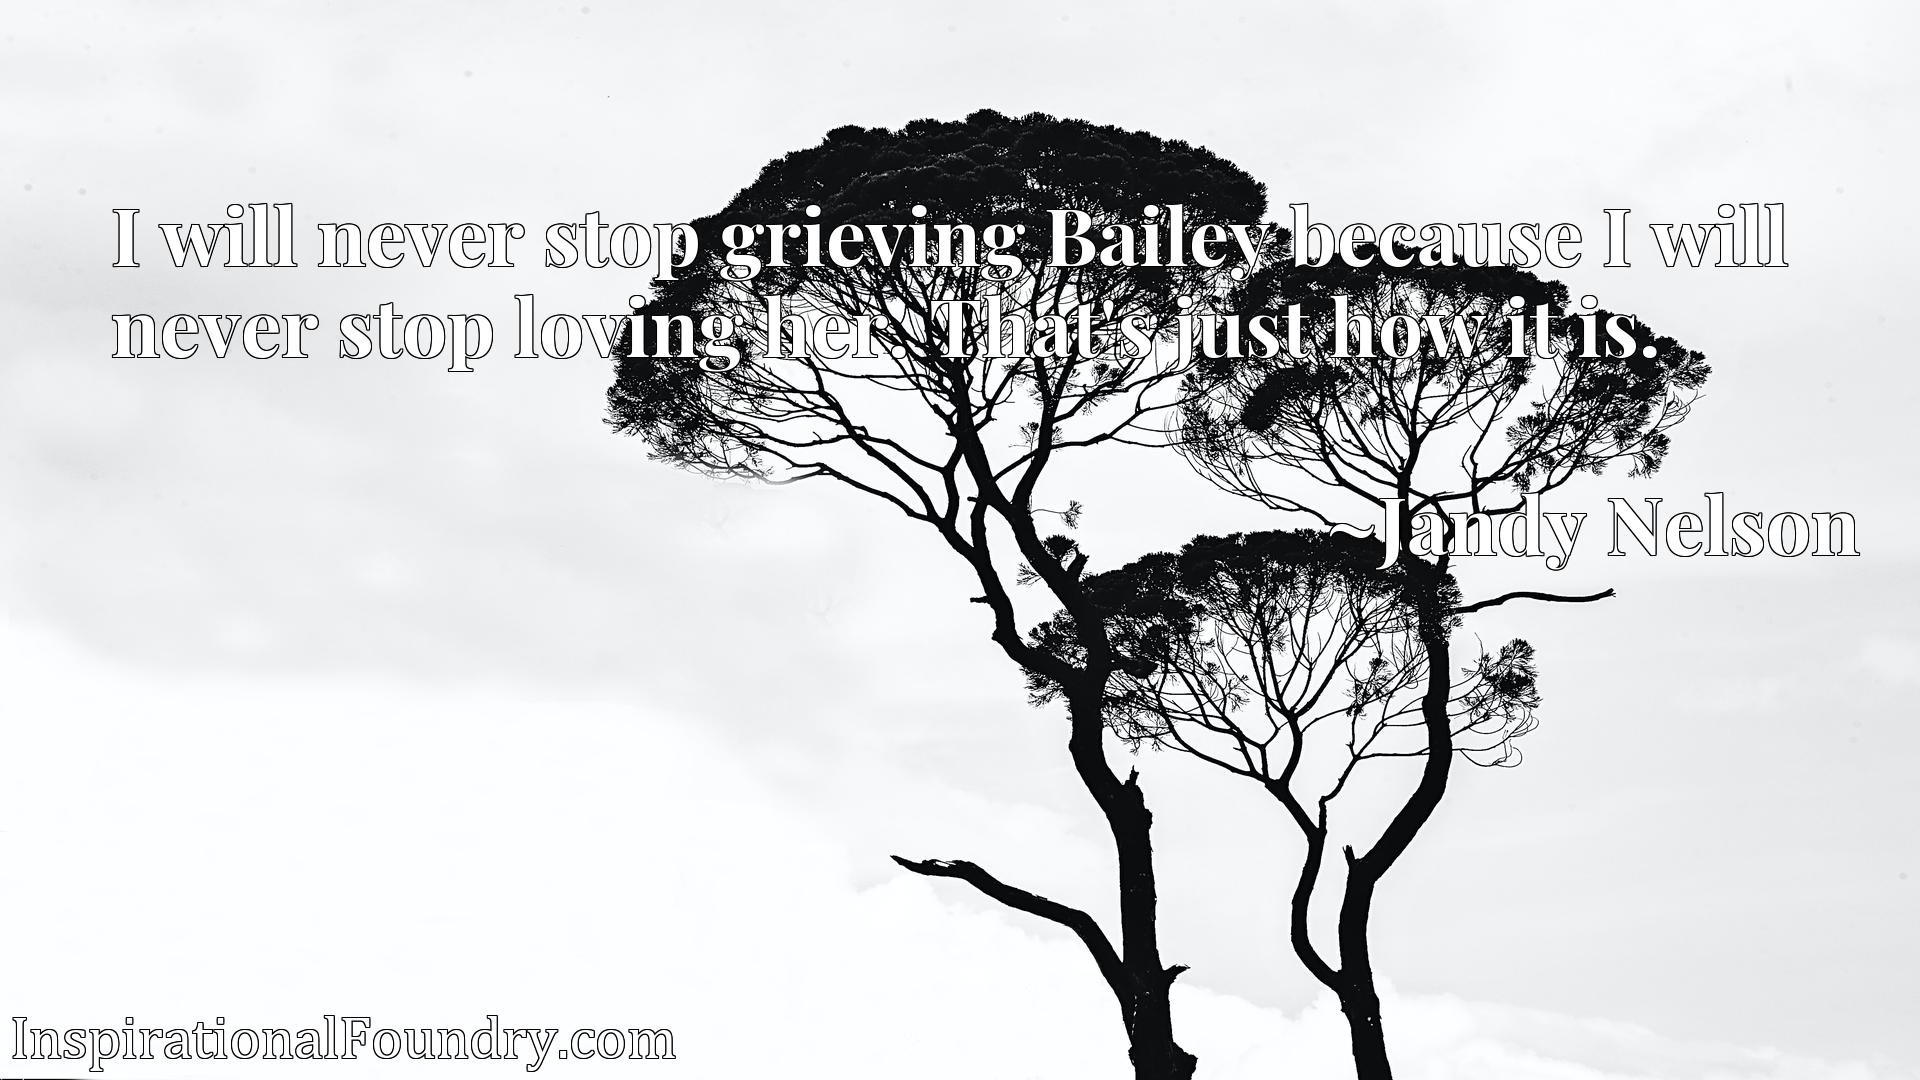 I will never stop grieving Bailey because I will never stop loving her. That's just how it is.